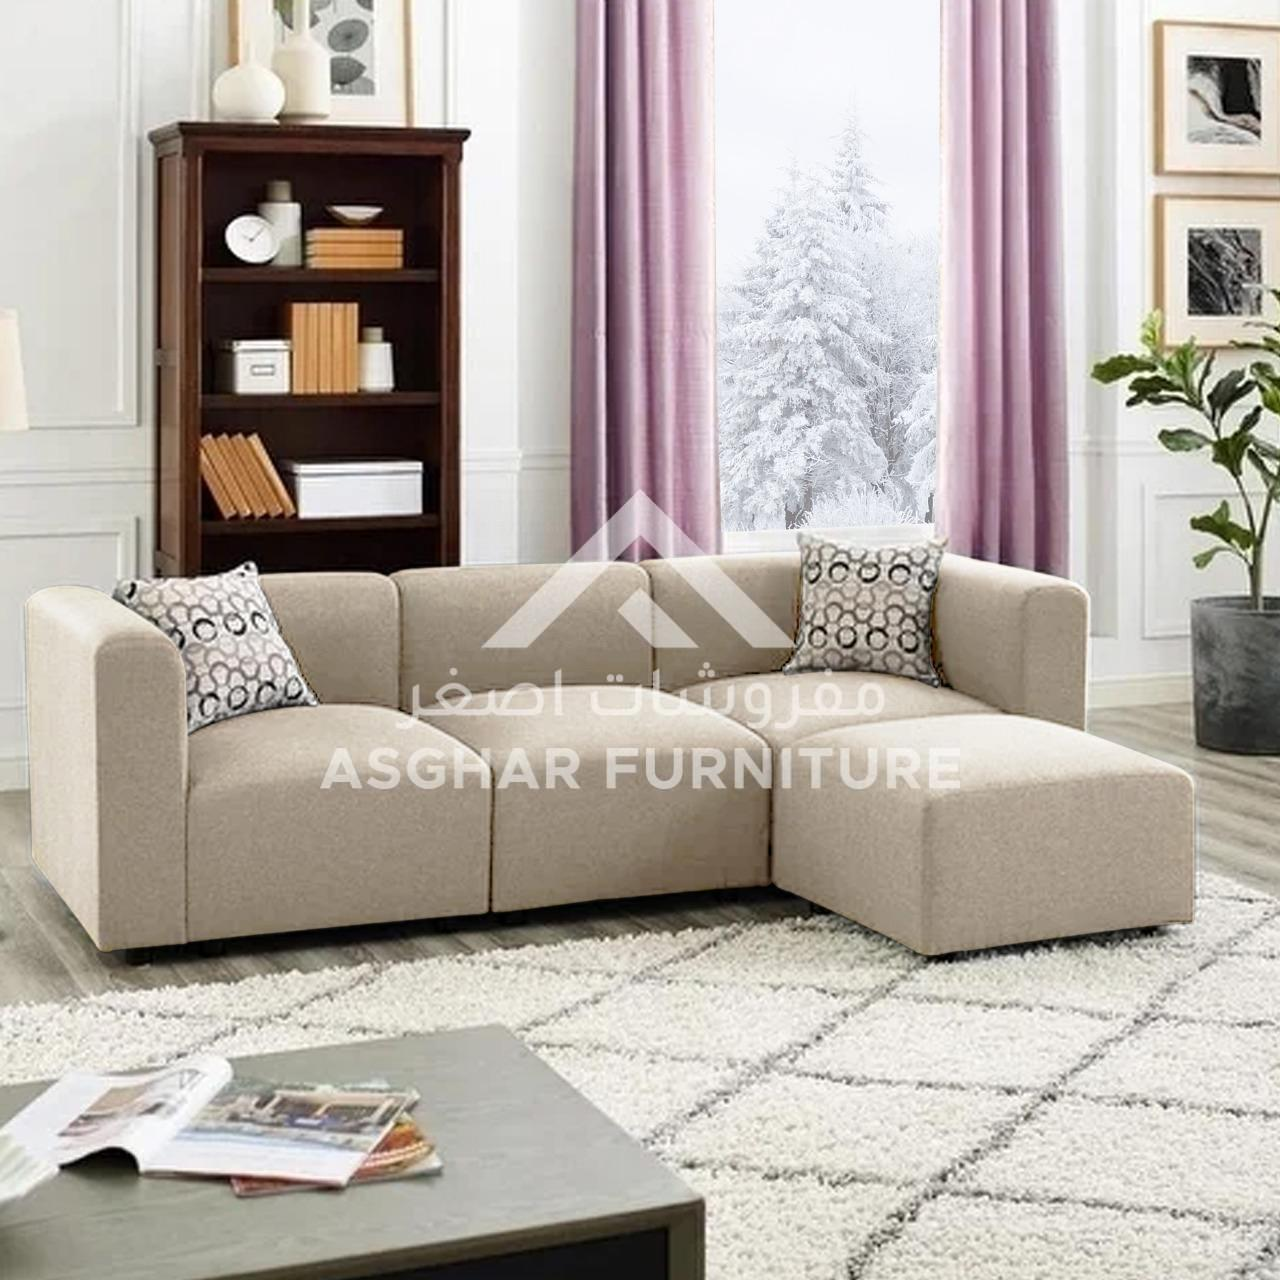 Coby-Sofa-and-Ottoman-beige.jpg